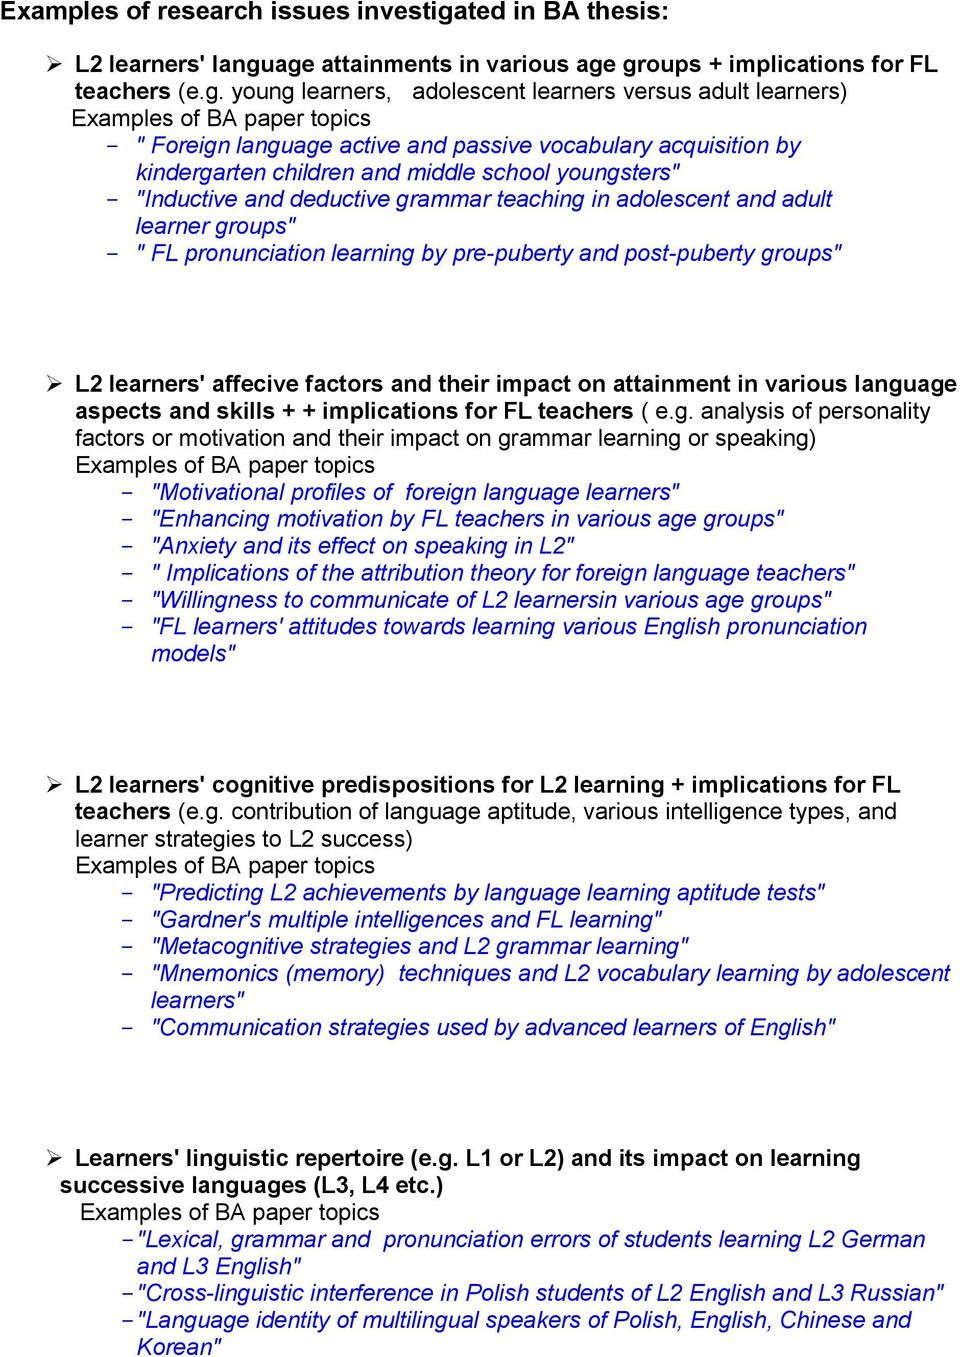 "age attainments in various age groups + implications for FL teachers (e.g. young learners, adolescent learners versus adult learners) - "" Foreign language active and passive vocabulary acquisition by"